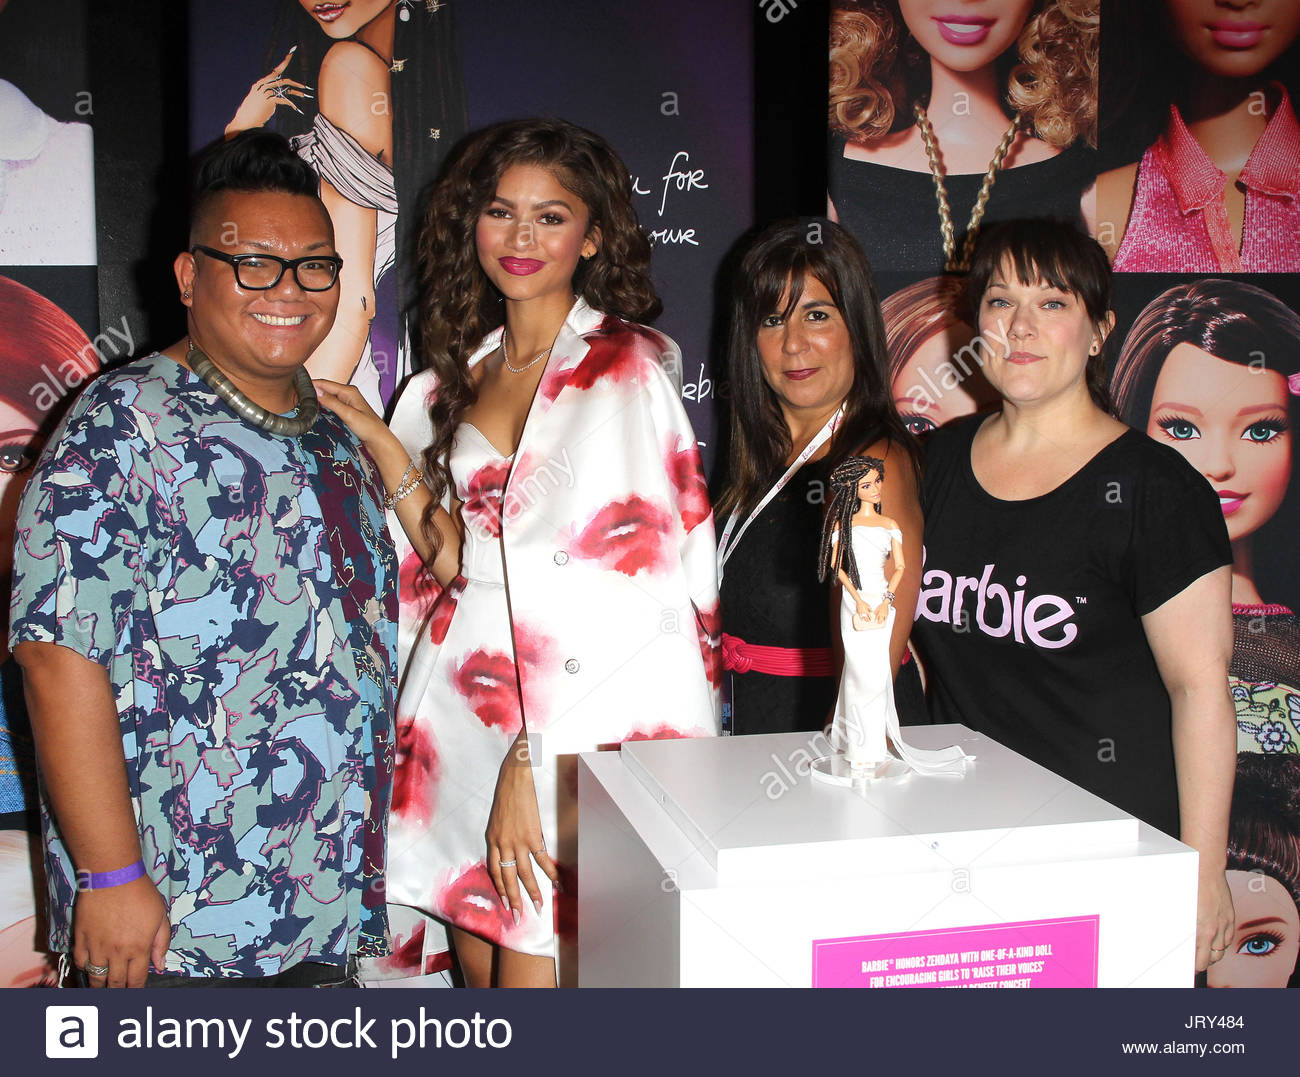 Zendaya zendaya receiving her one of a kind barbie and meet and zendaya receiving her one of a kind barbie and meet and greet at the barbie rock n royals concert experience dress by msgm makeup is dior beauty m4hsunfo